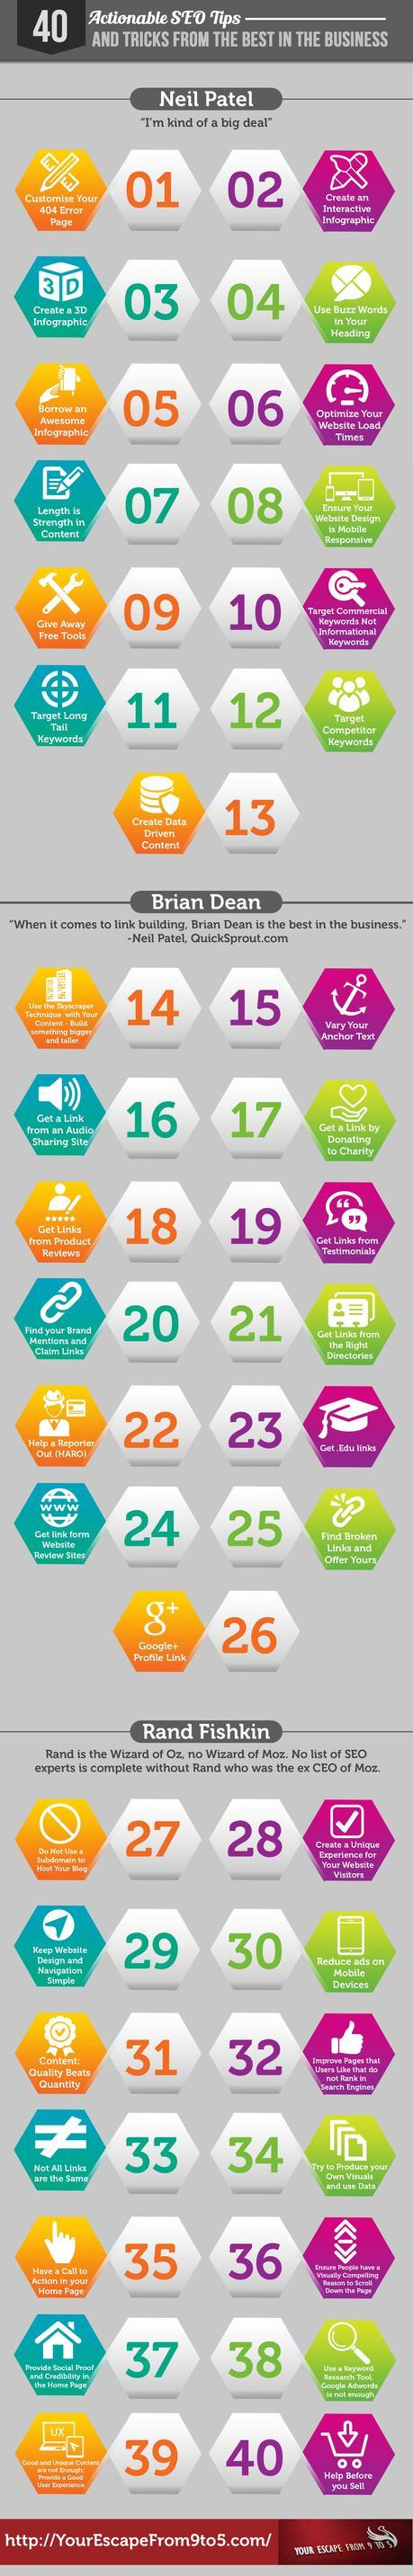 40 SEO Tips from the Best SEO Minds – Infographic